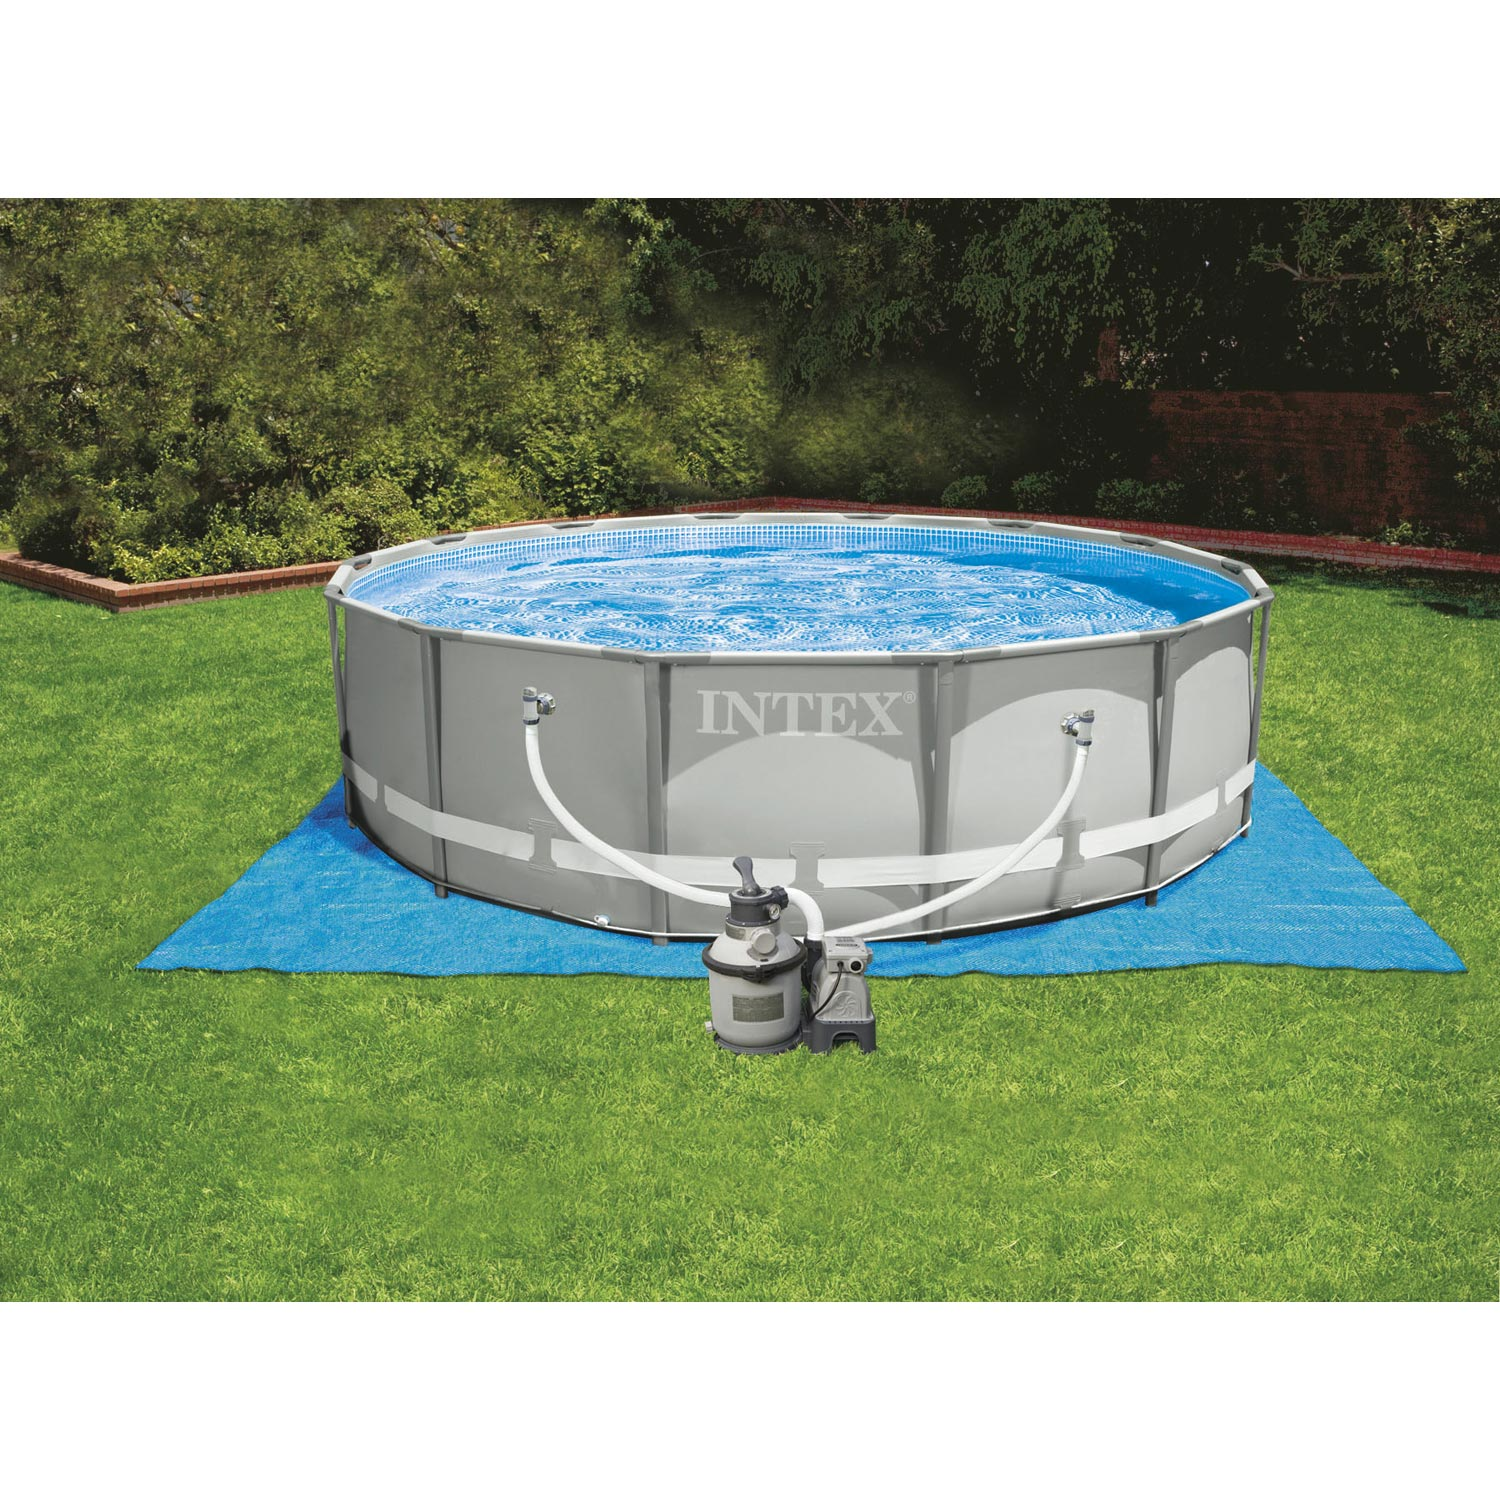 Piscine hors sol autoportante tubulaire ultraframe intex for Piscine hors sol declaration